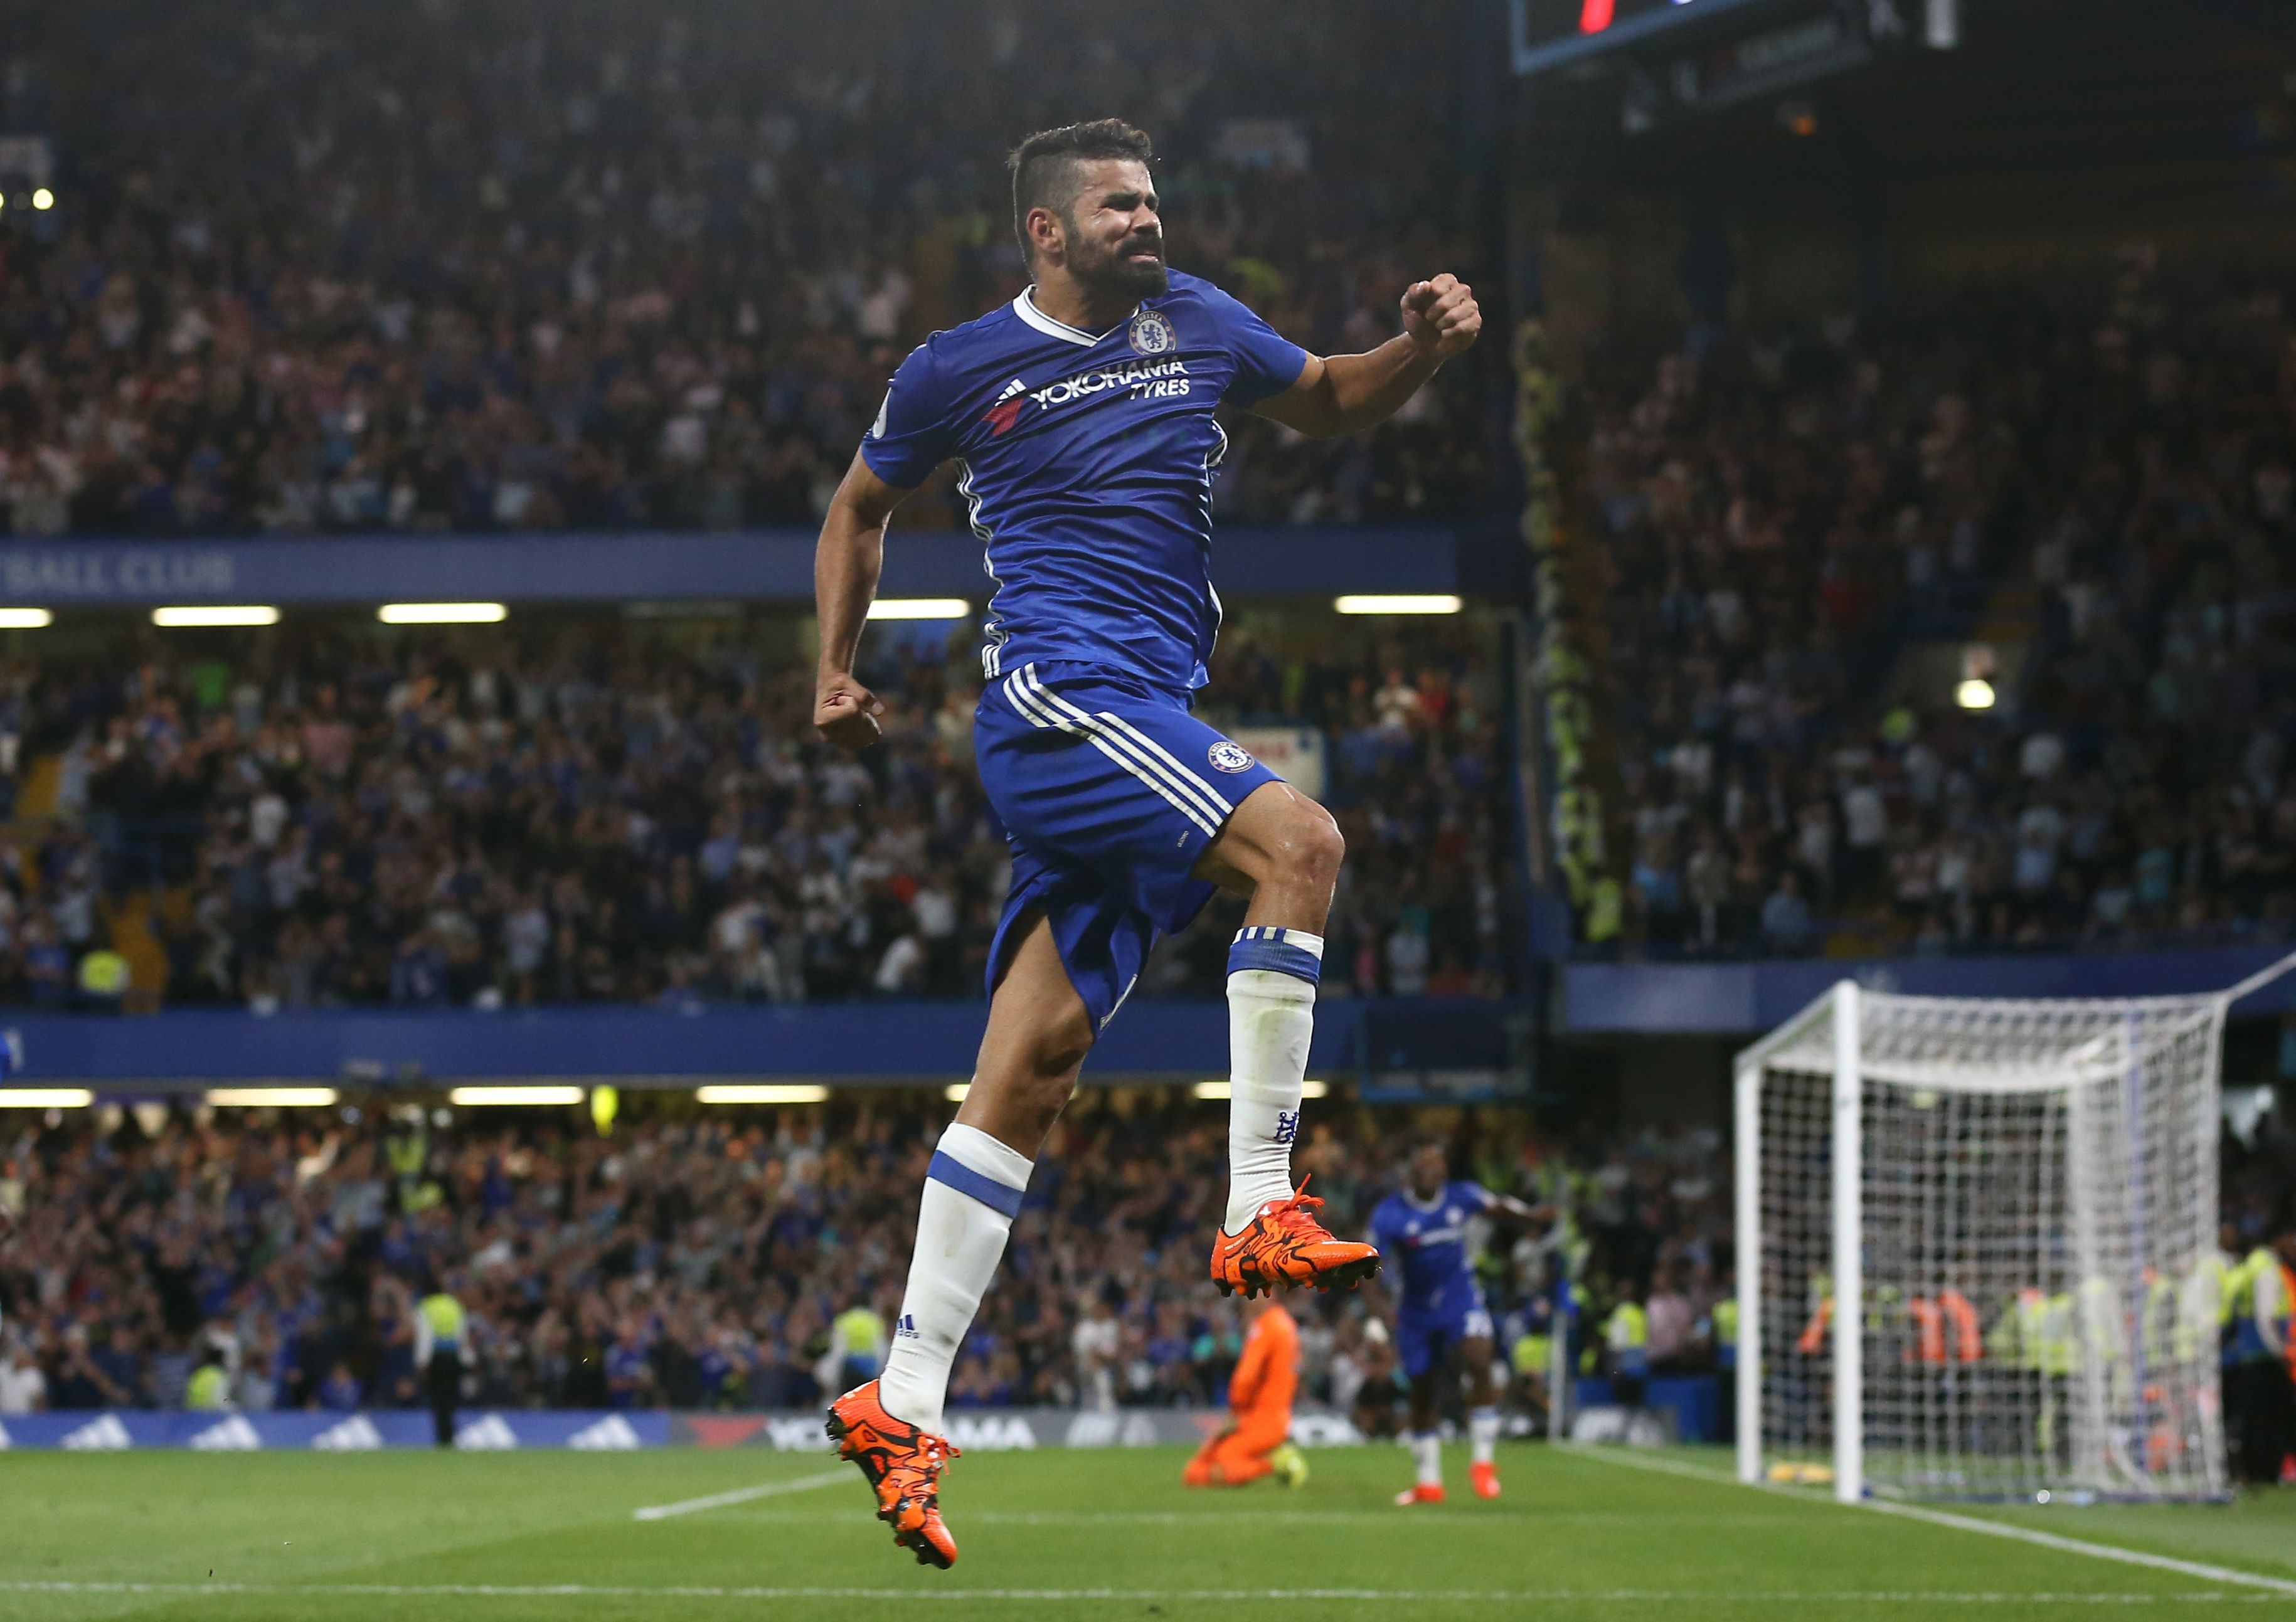 Chelsea's Brazilian-born Spanish striker Diego Costa celebrates after scoring their second goal during the English Premier League football match between Chelsea and West Ham United at Stamford Bridge in London on August 15, 2016. / AFP / Justin TALLIS / RESTRICTED TO EDITORIAL USE. No use with unauthorized audio, video, data, fixture lists, club/league logos or 'live' services. Online in-match use limited to 75 images, no video emulation. No use in betting, games or single club/league/player publications. / (Photo credit should read JUSTIN TALLIS/AFP/Getty Images)